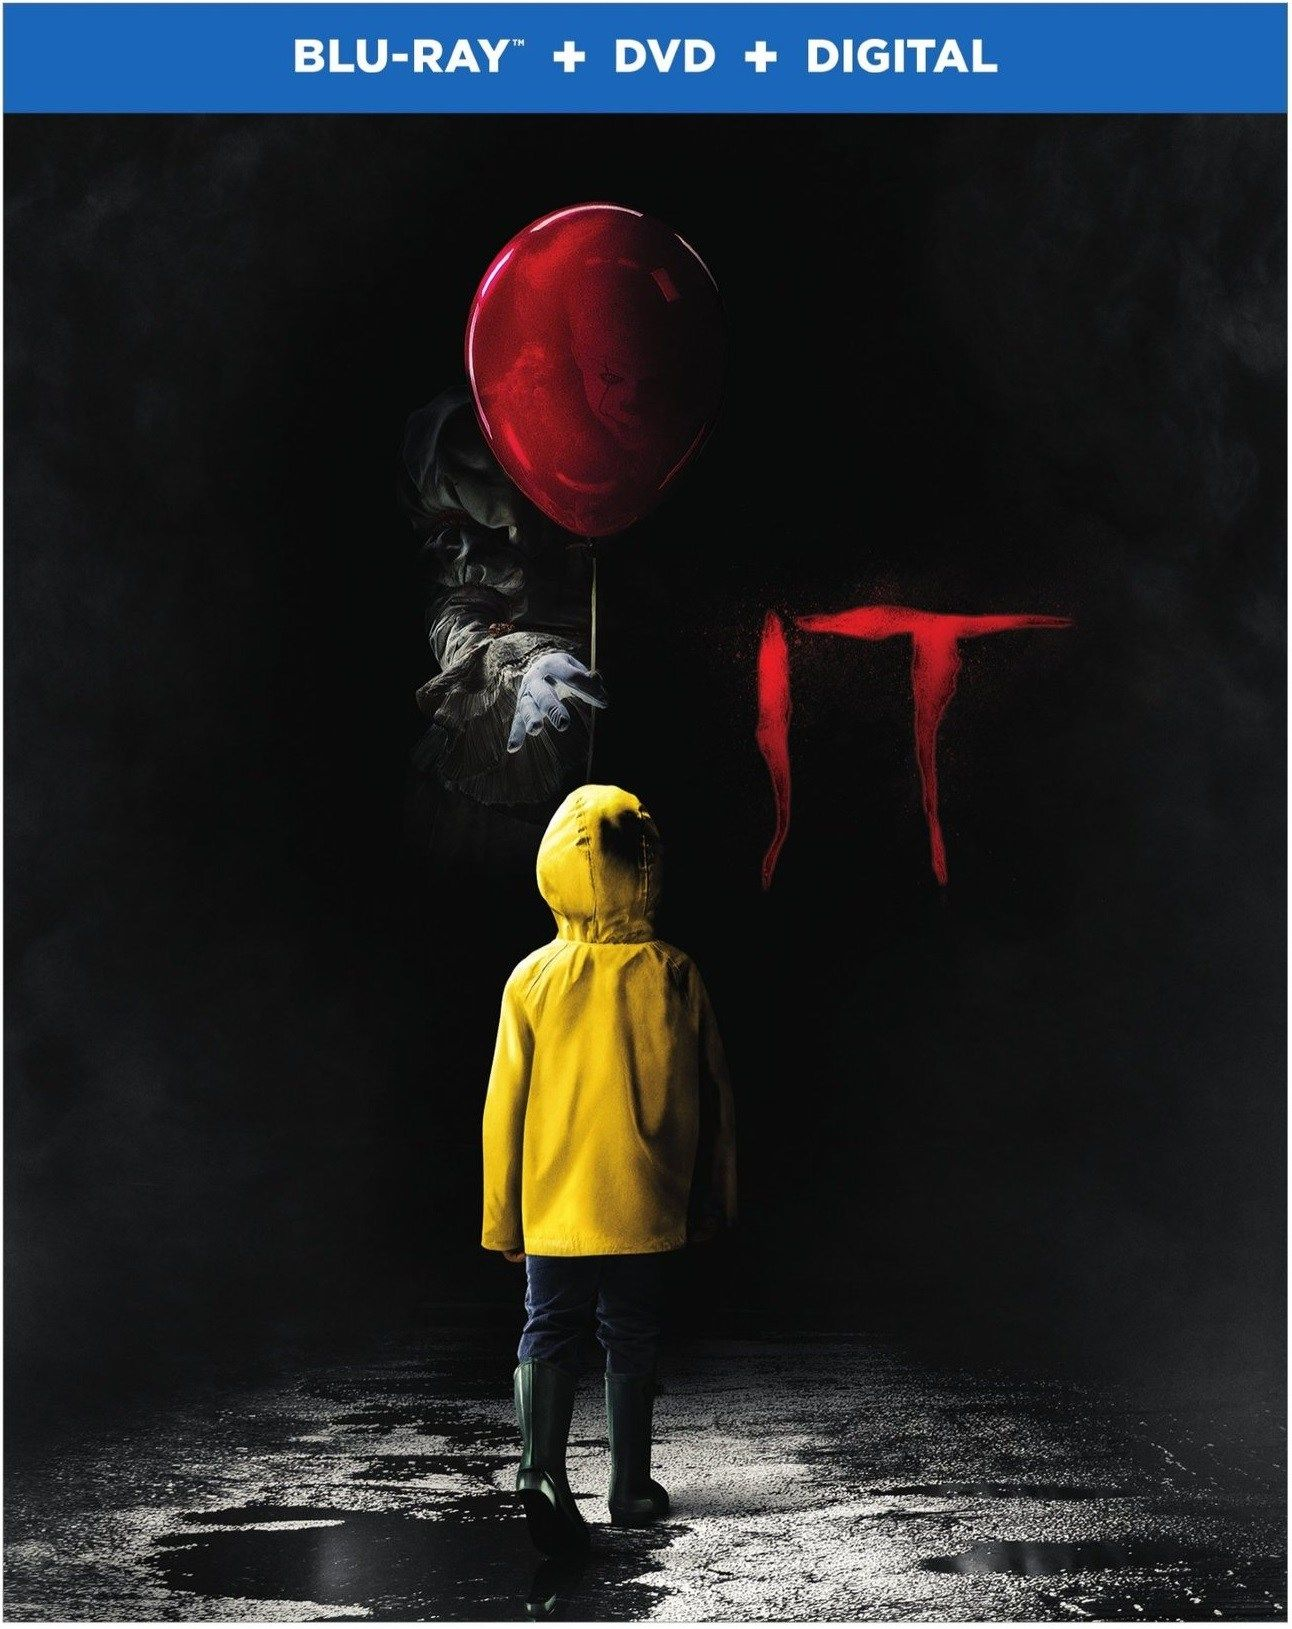 5 Reasons To Get Stephen King's 'It' Chapter 1 DVD Blu